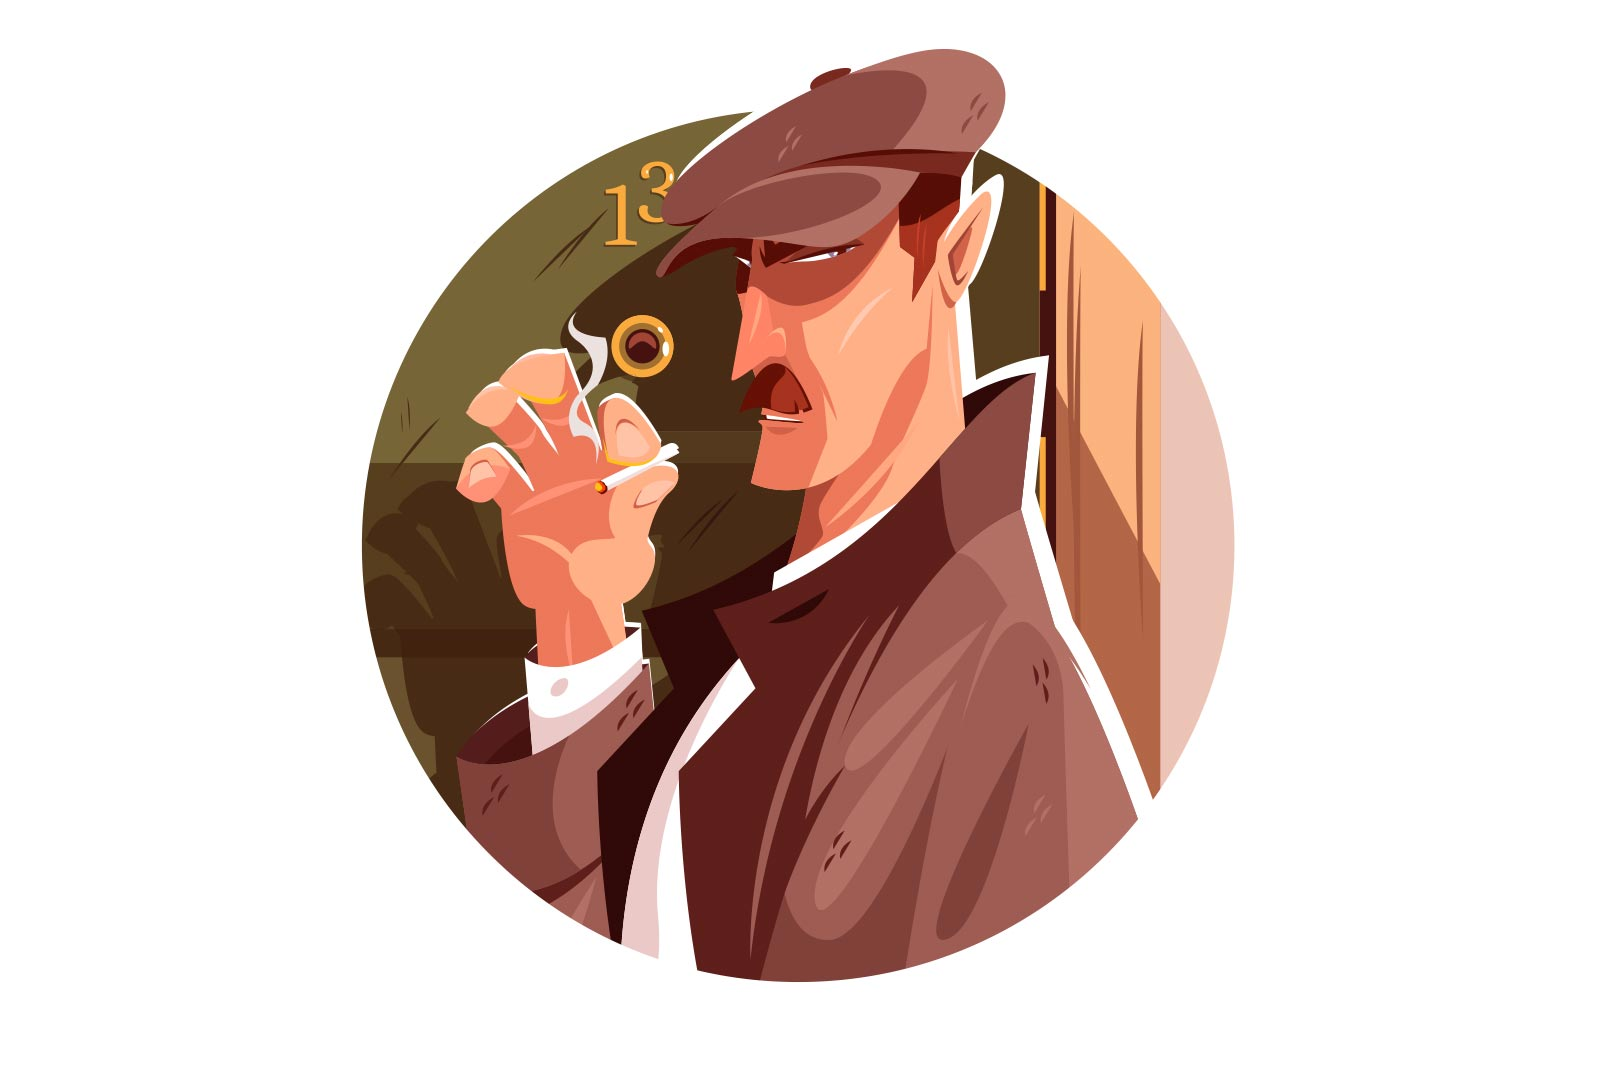 Secret spy man vector illustration. Clever person smoking cigarette and follows someone flat style. Mysterious agent. Criminal and danger concept. Isolated on white background